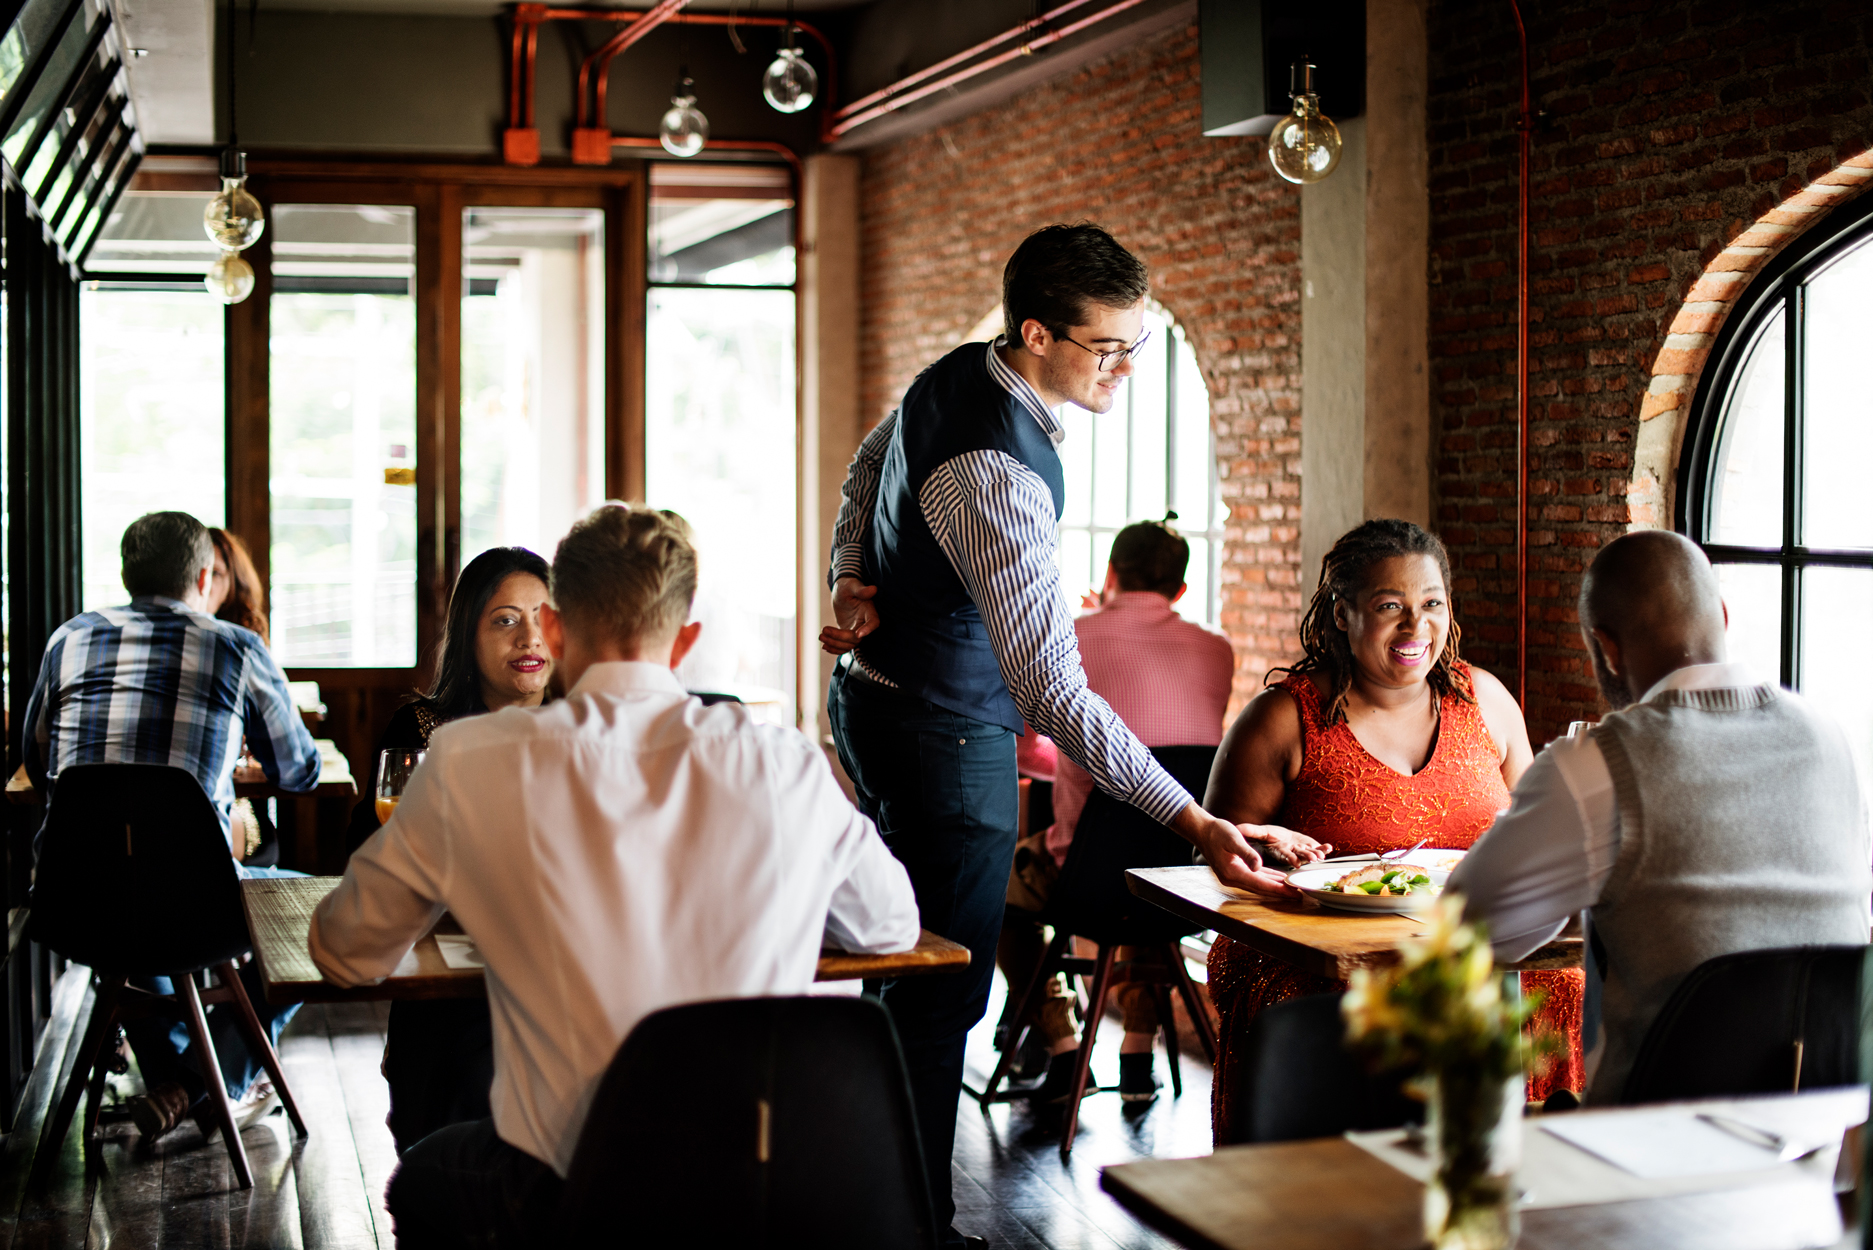 Is It Safe to Dine Out at Restaurants During the Coronavirus Pandemic?